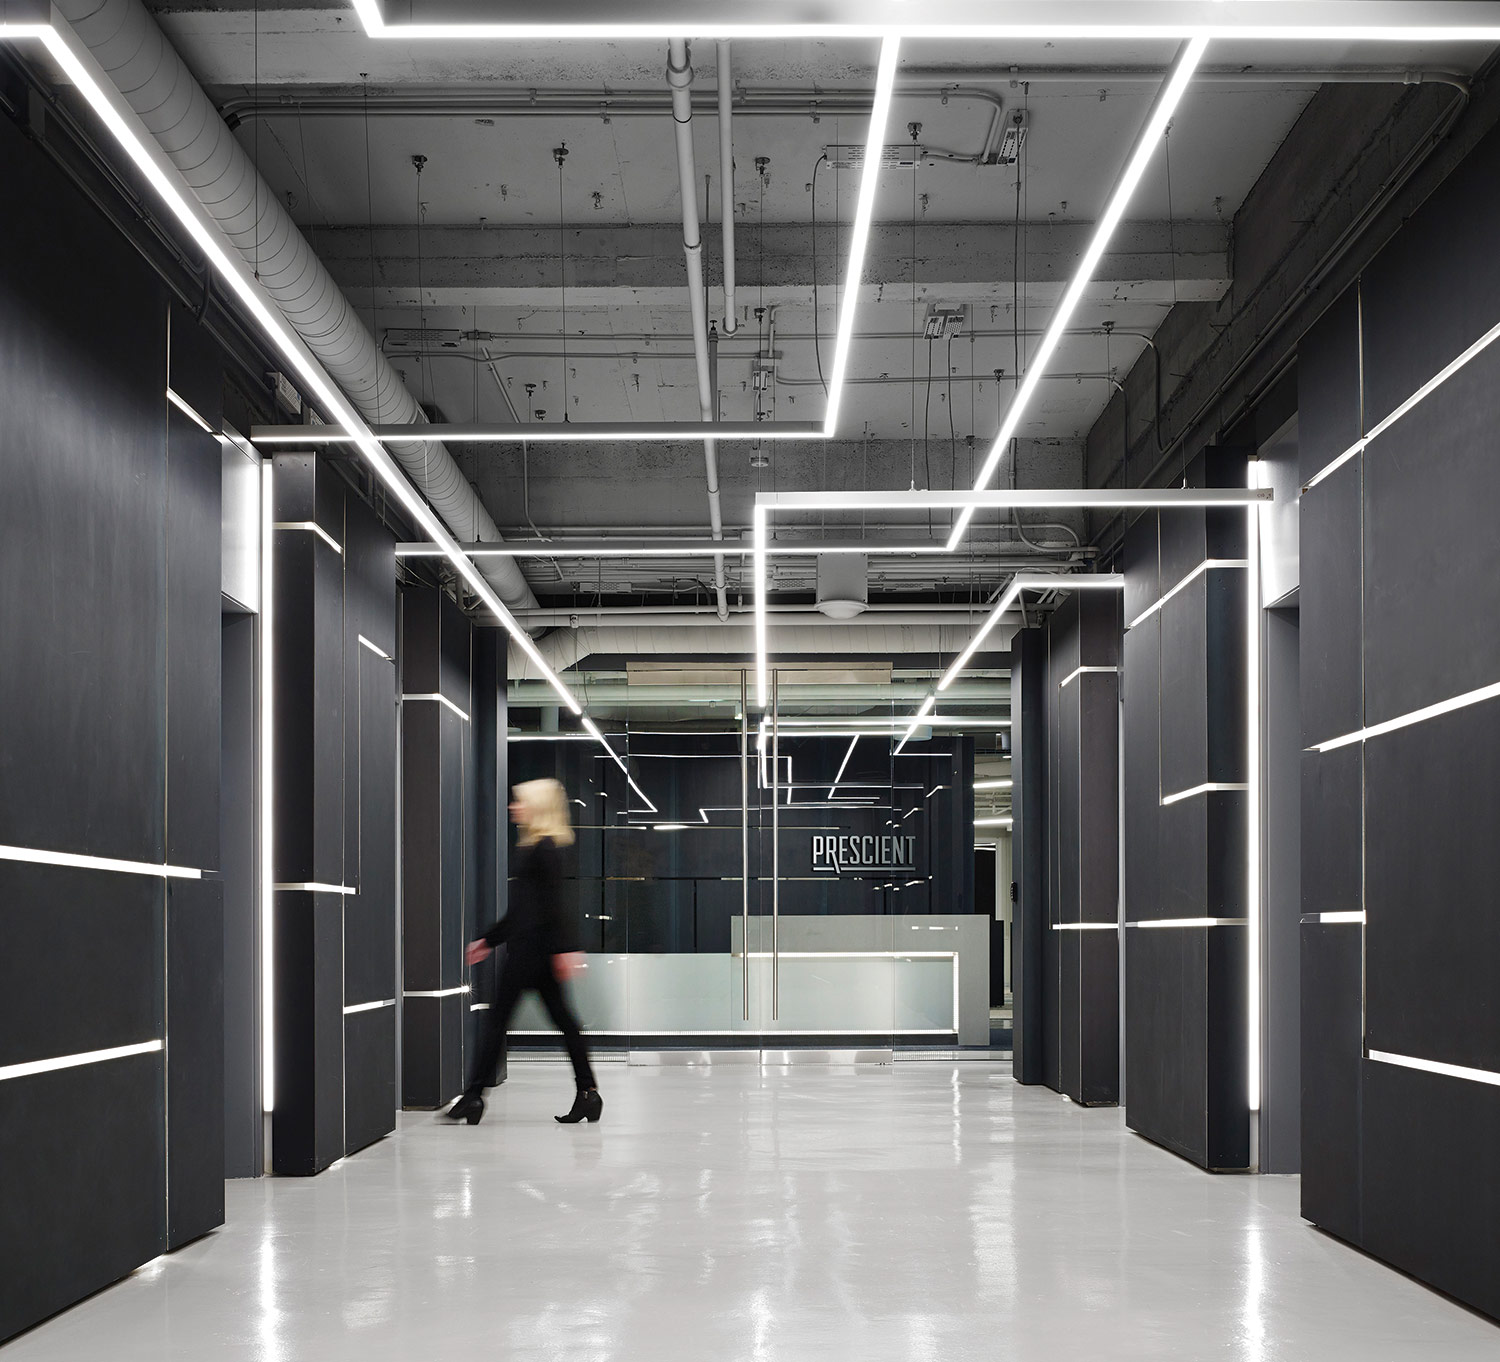 PerkinsWill uses coziness in a hightech security firms office  Archpapercom